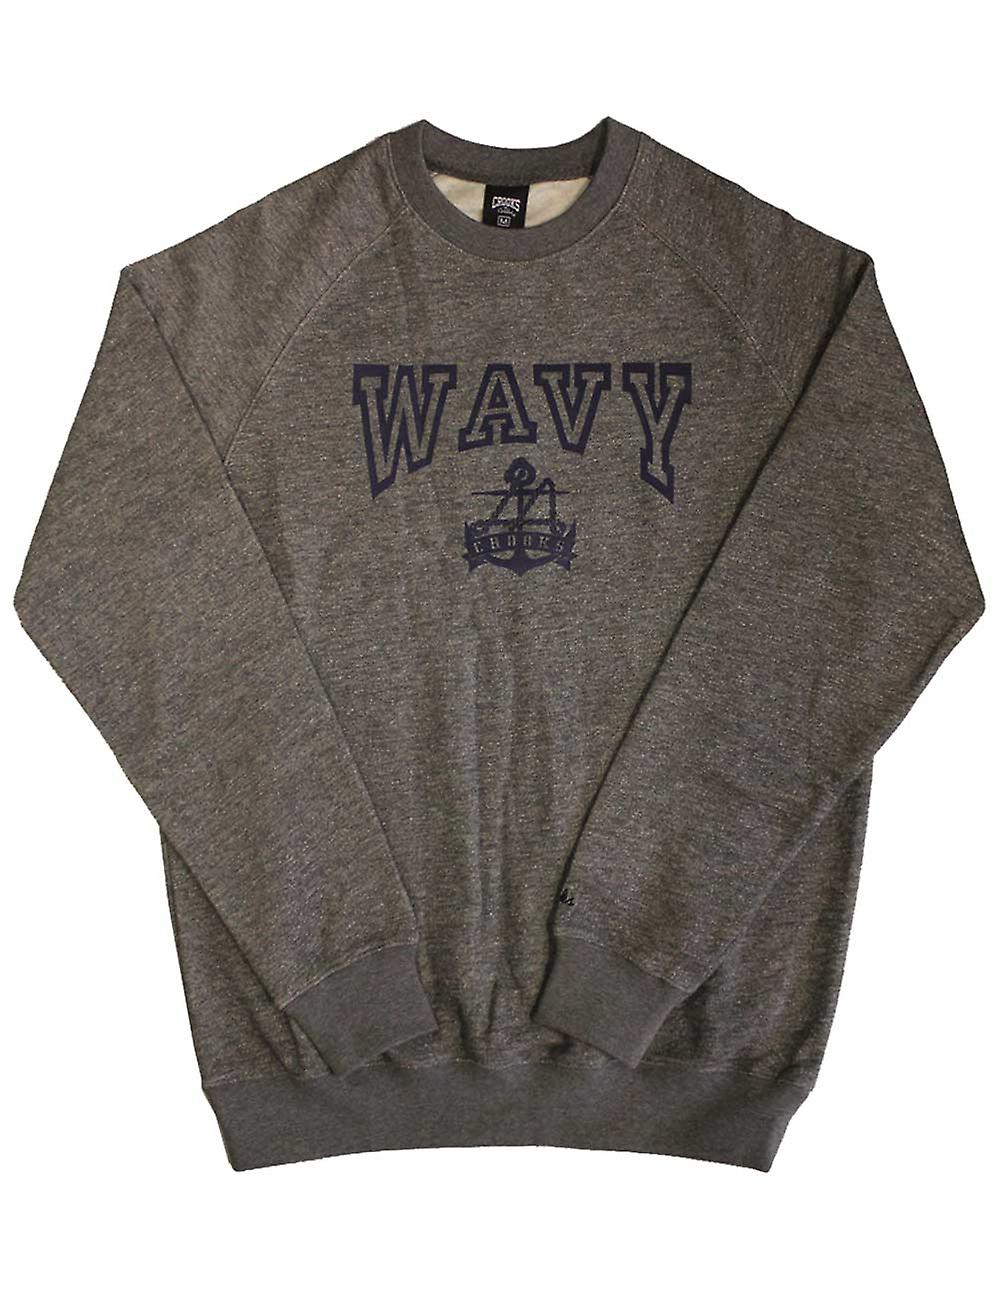 Crooks & Castles Wavy Sweatshirt Speckle Grey